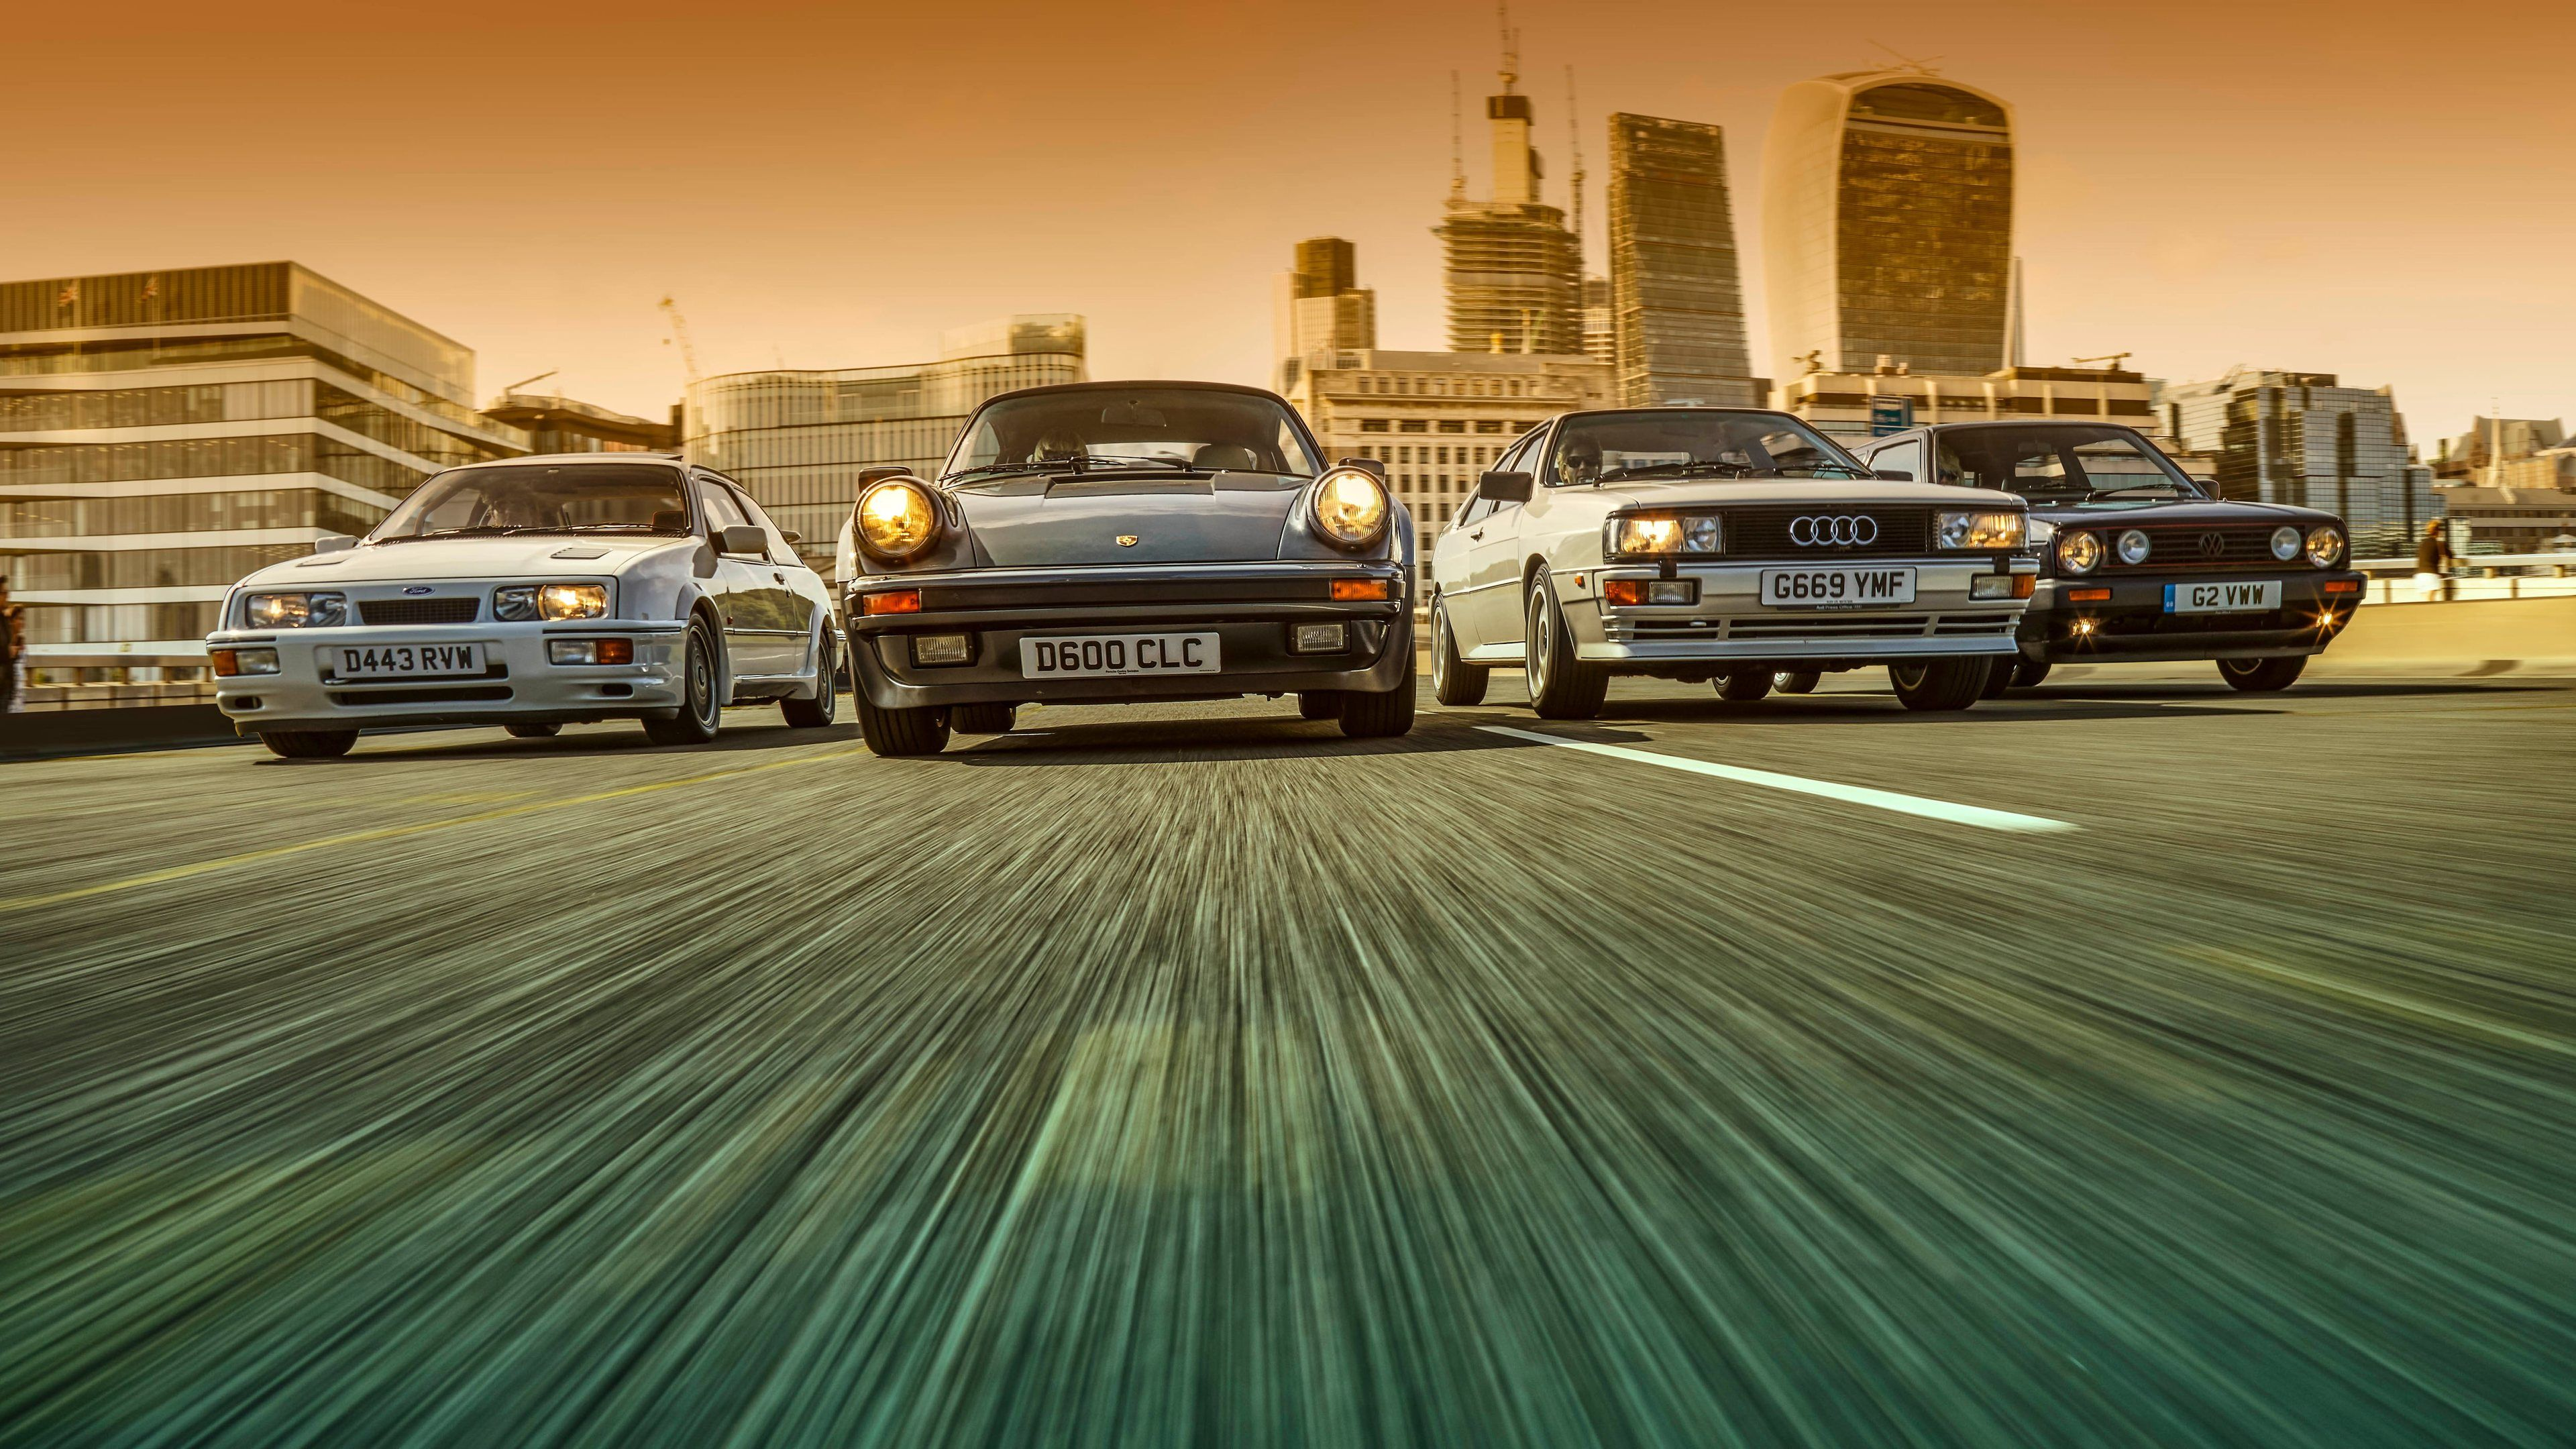 Wallpaper 4k Top Gear Cars 4k 4k Wallpapers Cars Wallpapers Hd Wallpapers Top Gear Wallpapers Top Gear Instagram Takipci